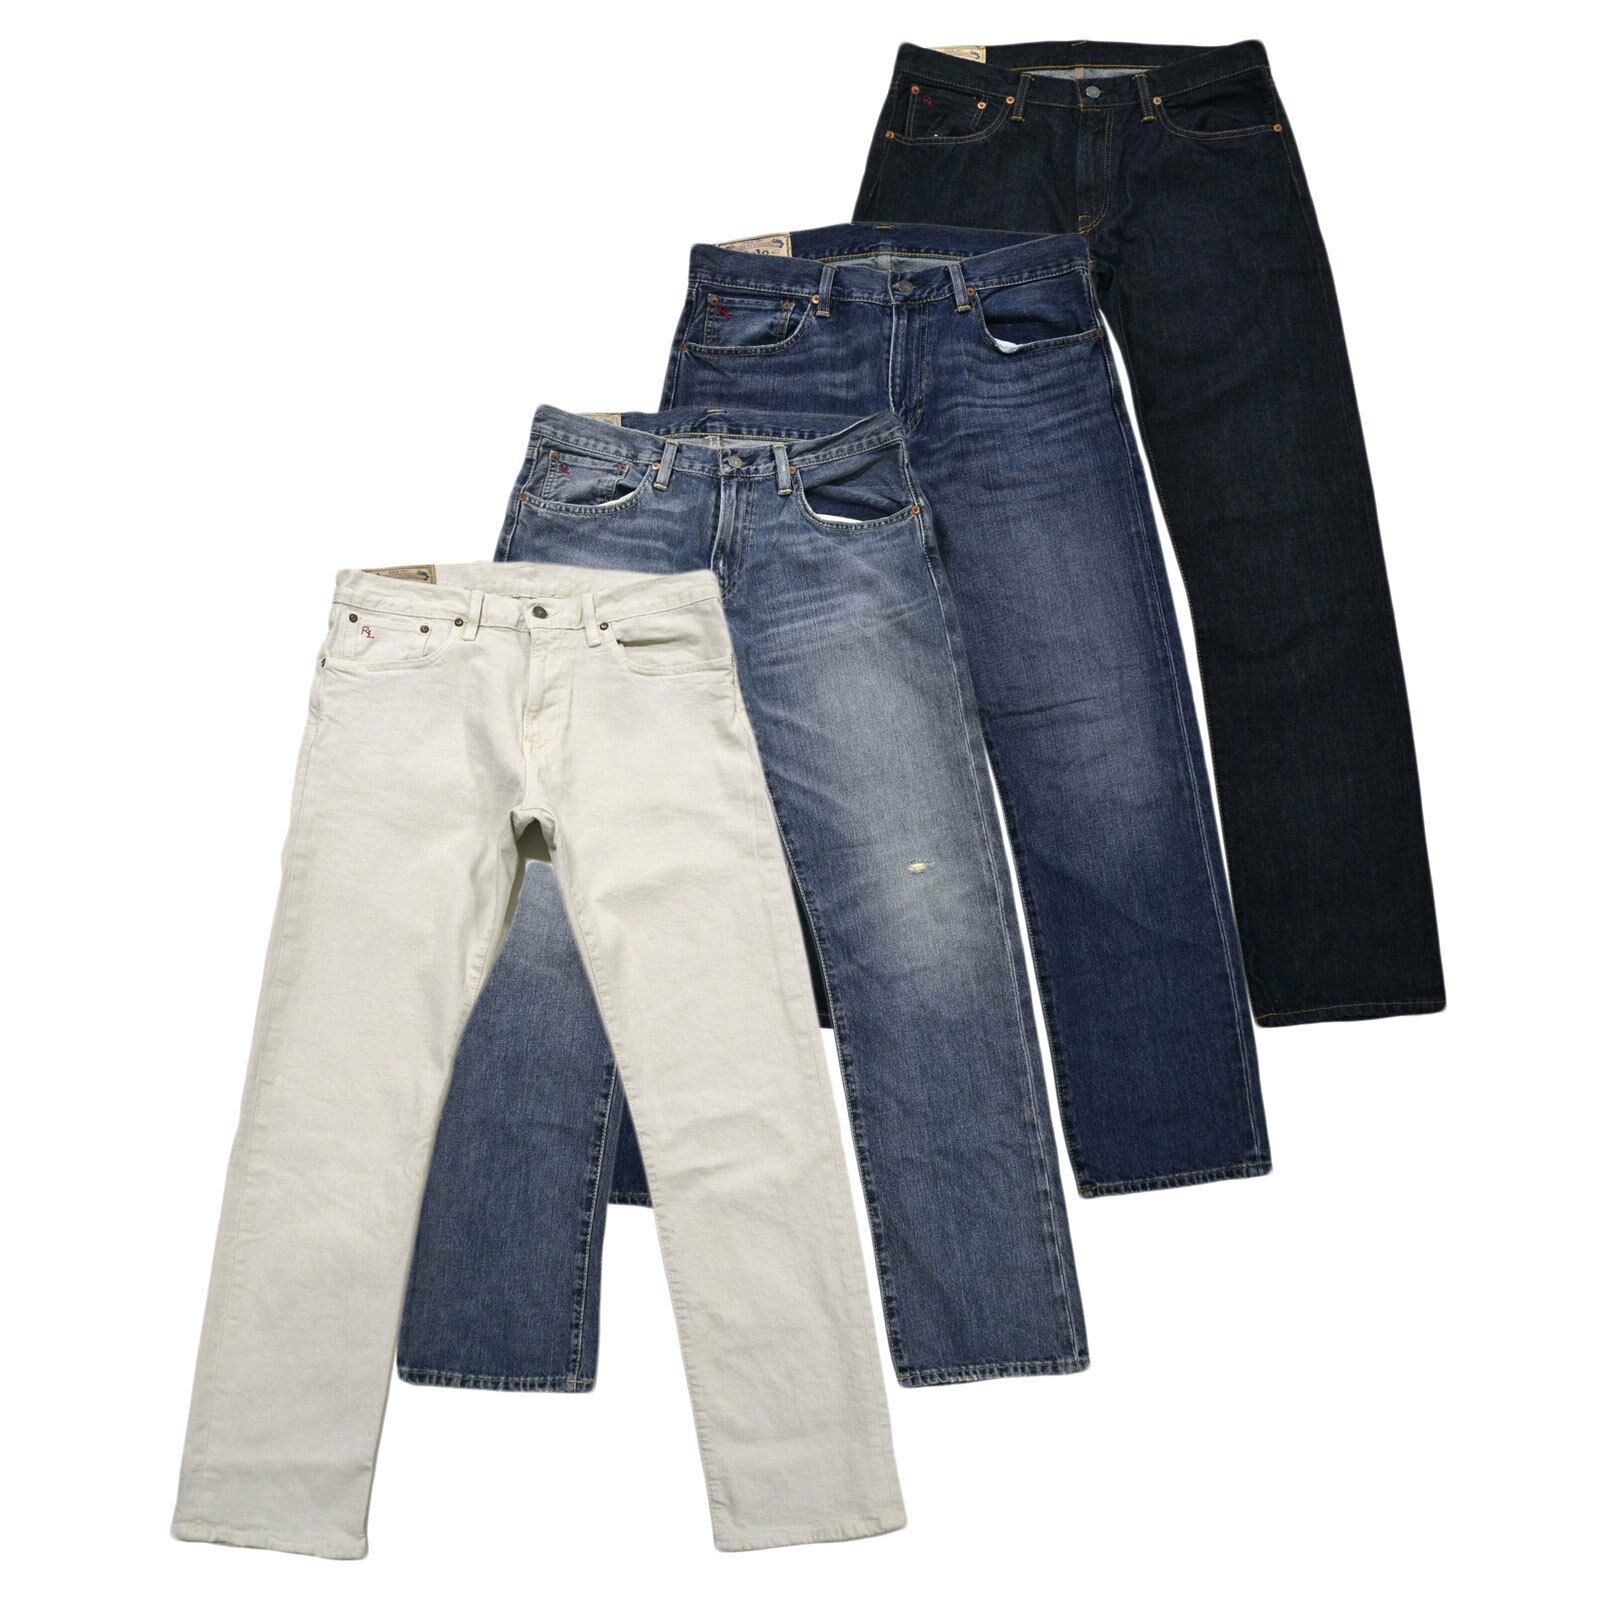 Polo Ralph Lauren Jeans Mens Straight Fit Pants Hampton Stonewashed New Nwt Prl